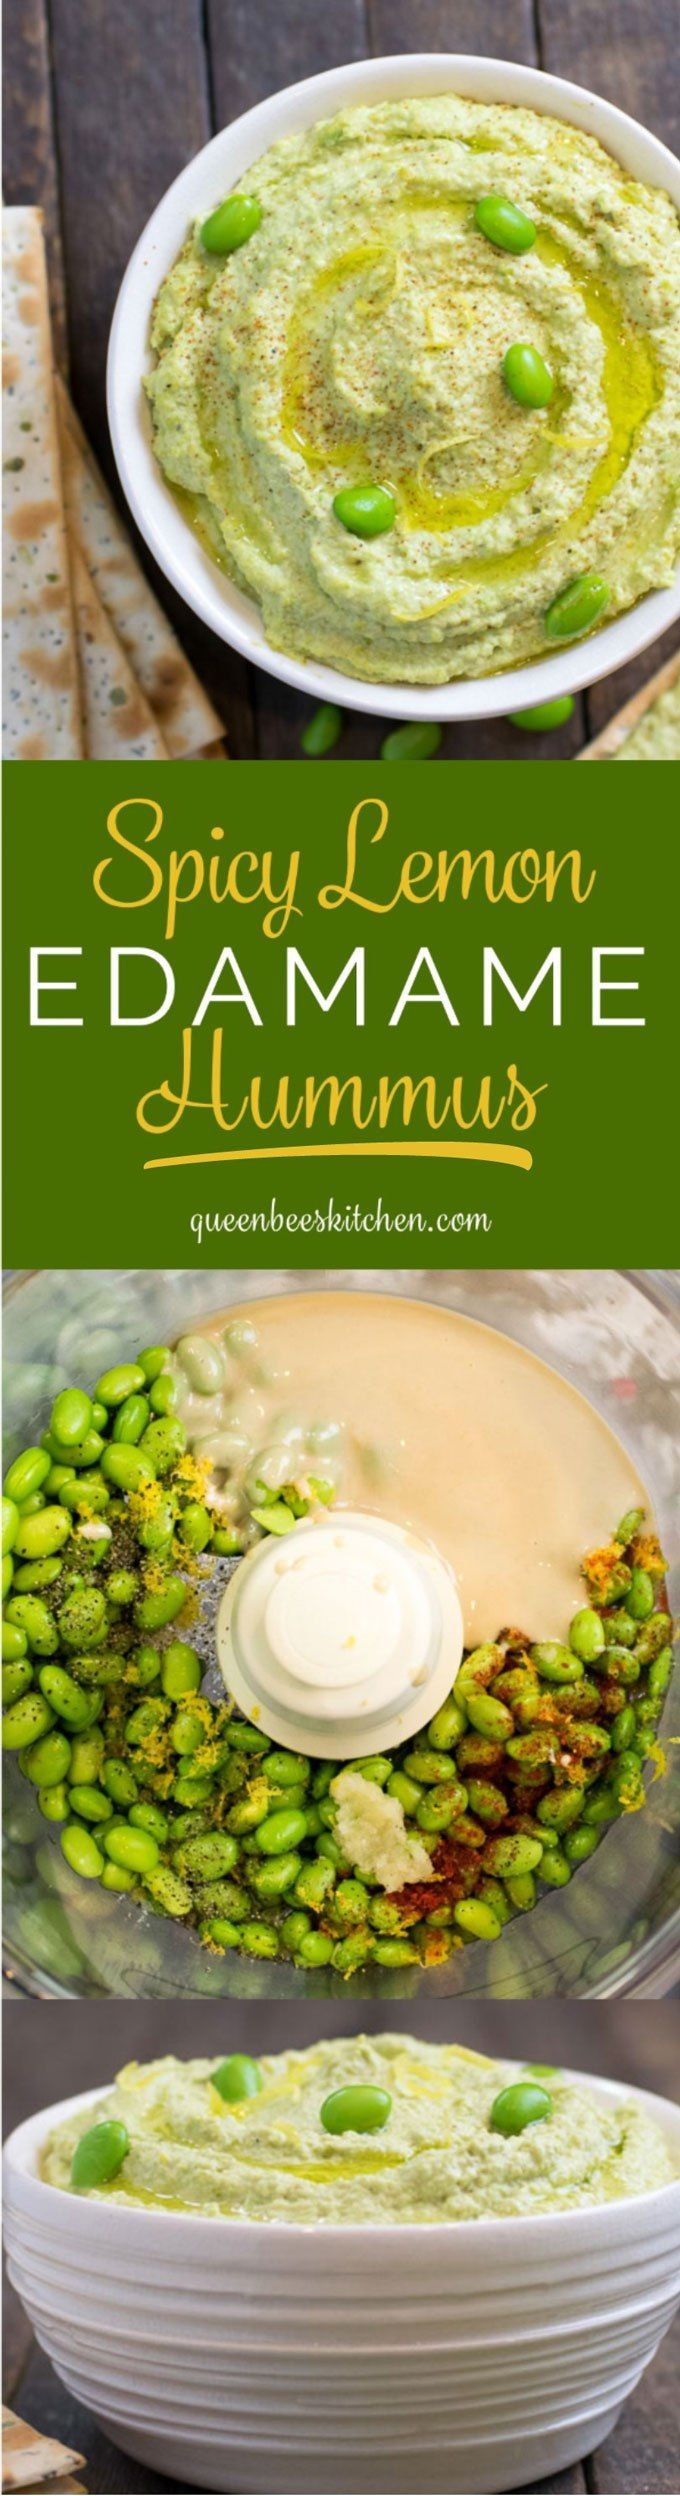 Spicy Lemon Edamame Hummus - so yummy and nutritious! And it's green #stpatricksday :)